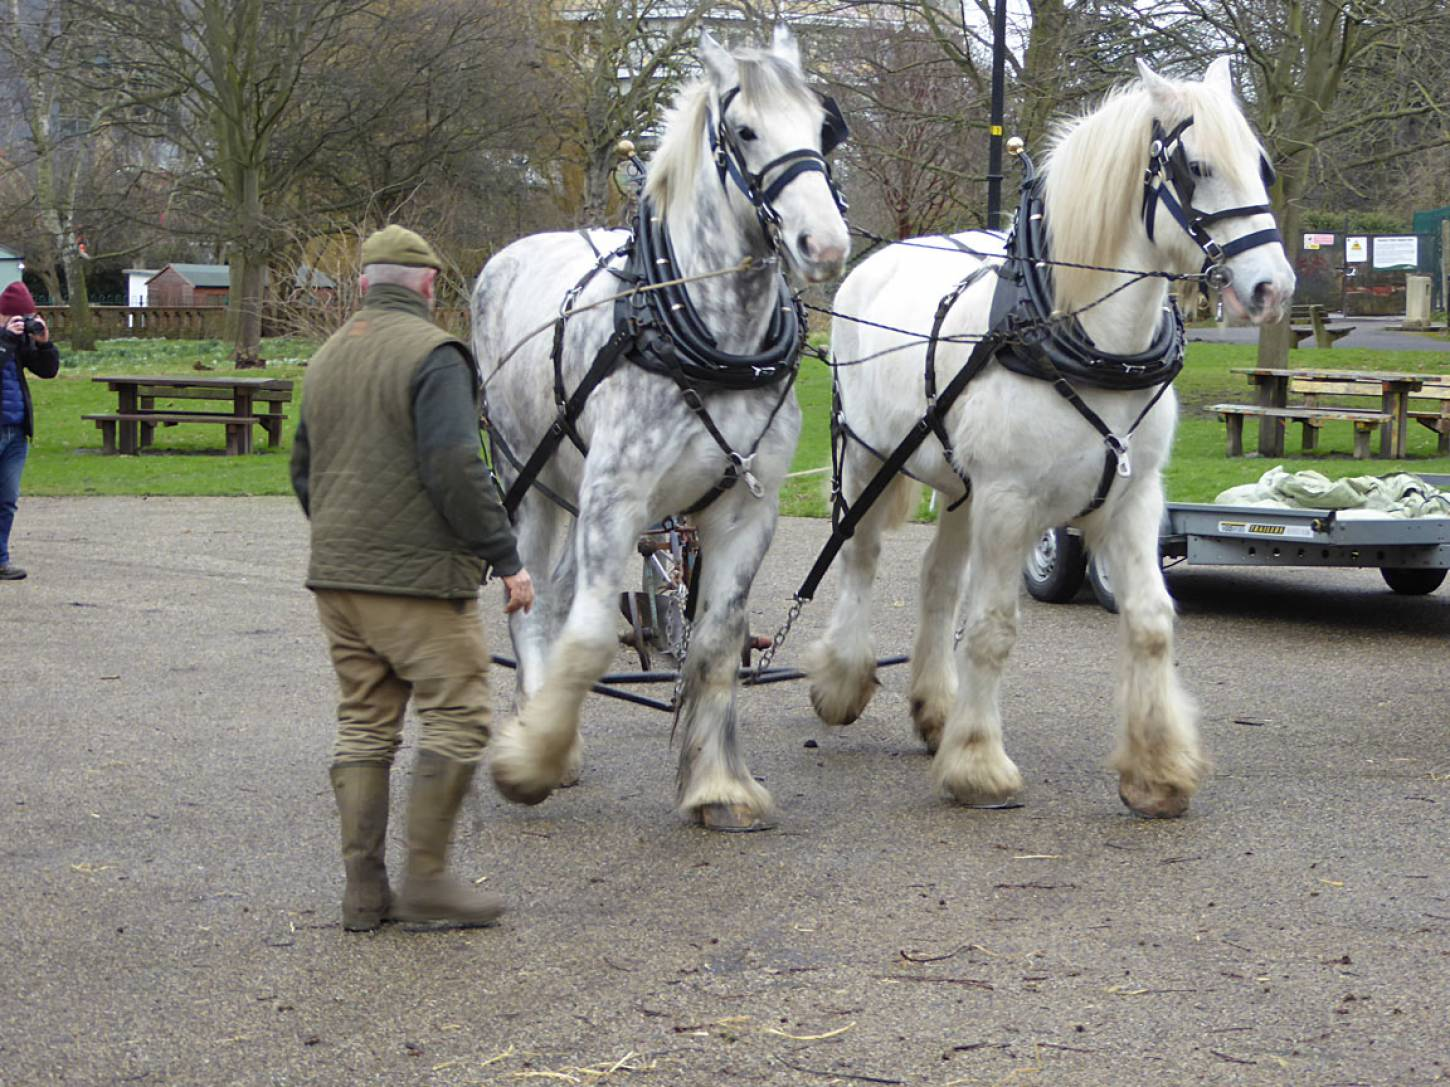 Shire horses, Heath and Nobby with ploughman Tom Nixon from <a href='http://www.operationcentaur.com/' target='_blank'>Operation Centaur</a> come to plough the <a href='https://twitter.com/ruskinparkse5?lang=en' target='_blank'>Ruskin Park</a> wheat patch - 12:48pm&nbsp;9<sup>th</sup>&nbsp;Feb.&nbsp;'18  <a href='http://maps.google.com/?t=h&q=51.465808,-0.092842&z=18&output=embed' target=_blank><img src='http://www.brockwell-bake.org.uk/img/marker.png' style='border:none;vertical-align:top' height=16px></a>